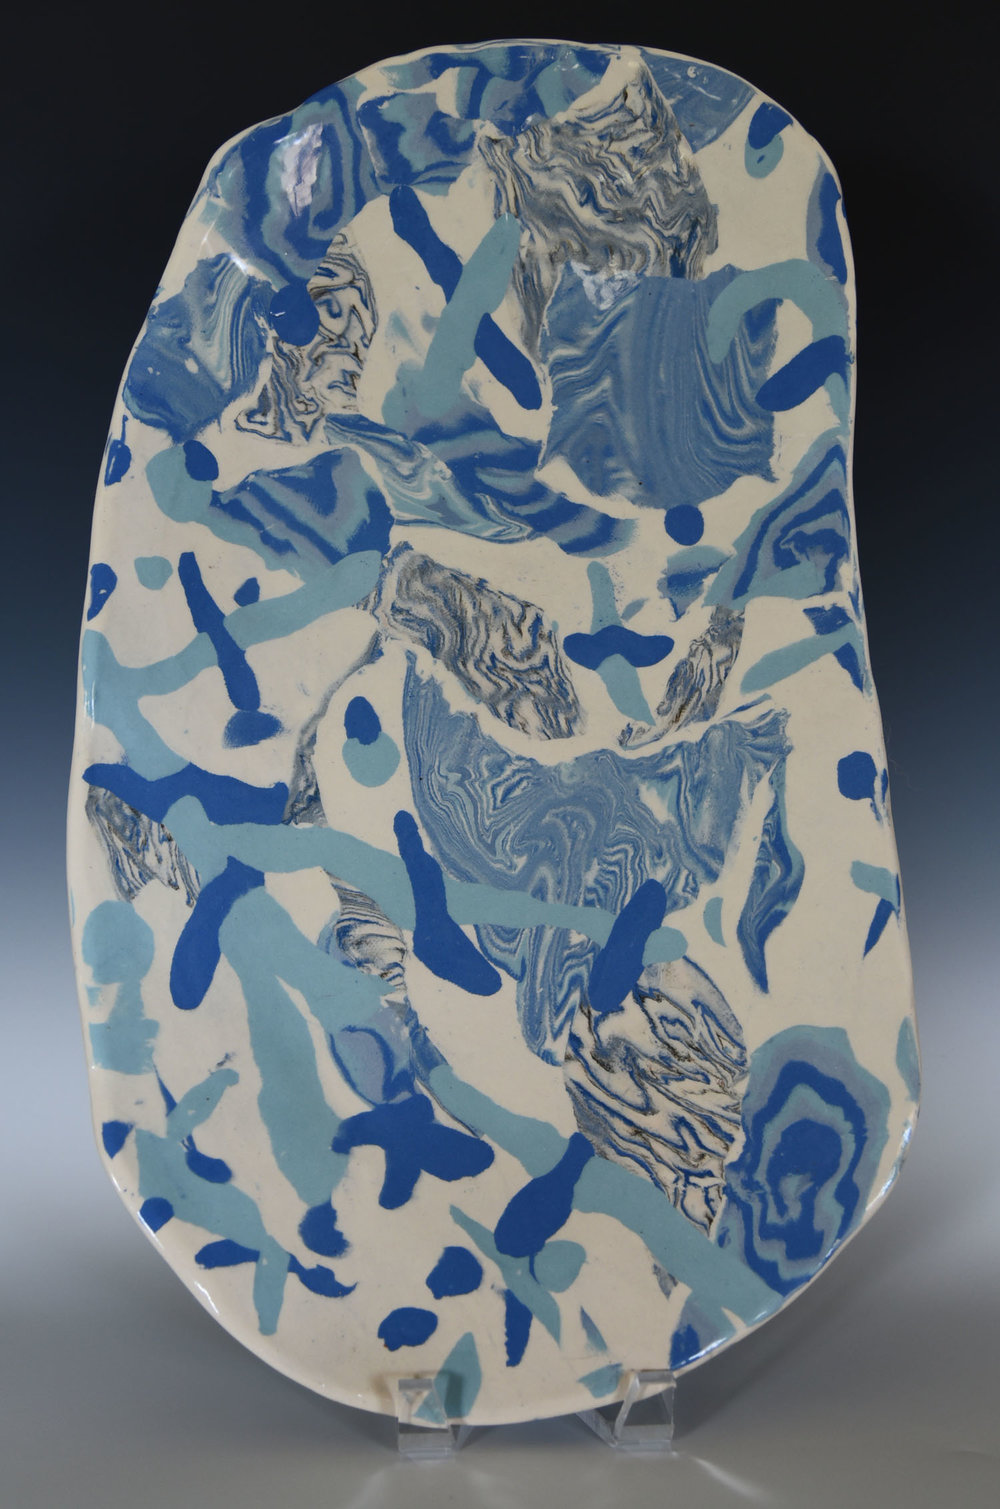 Wonky stoneware platter, colored clay